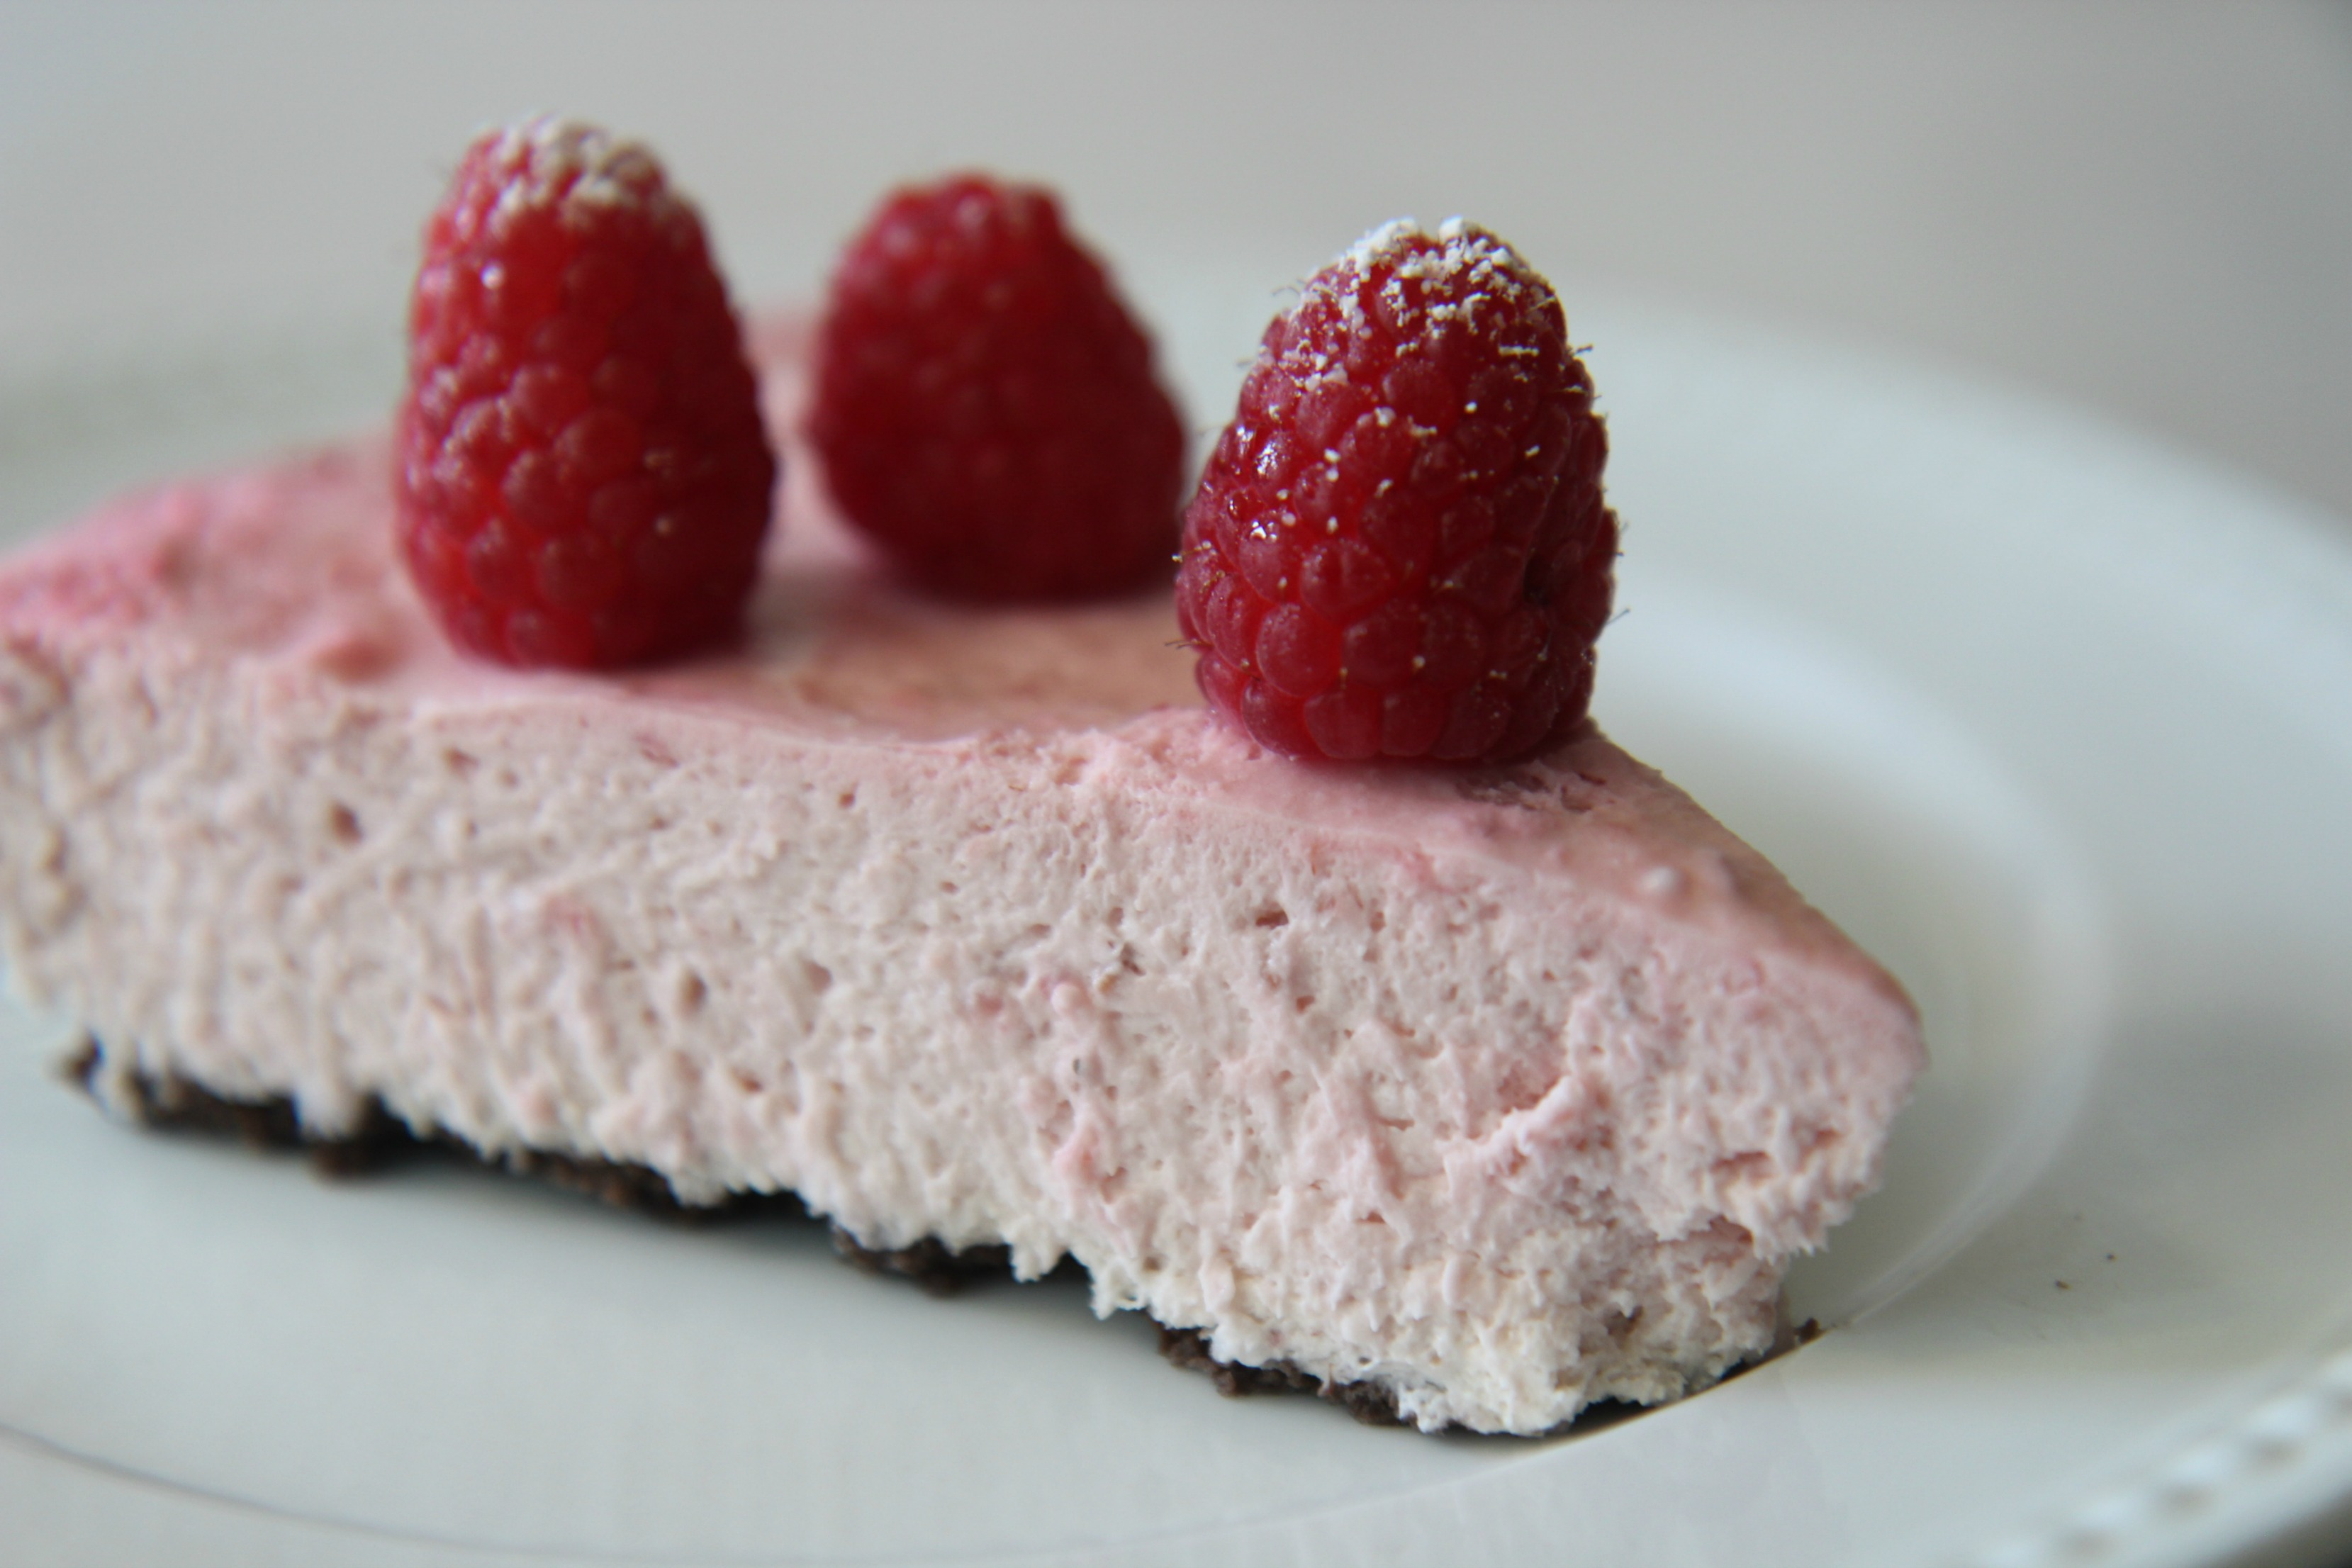 A light and fluffy slice of a no-bake white chocolate raspberry tart with a chocolate cookie crust topped with fresh raspberries and powdered sugar